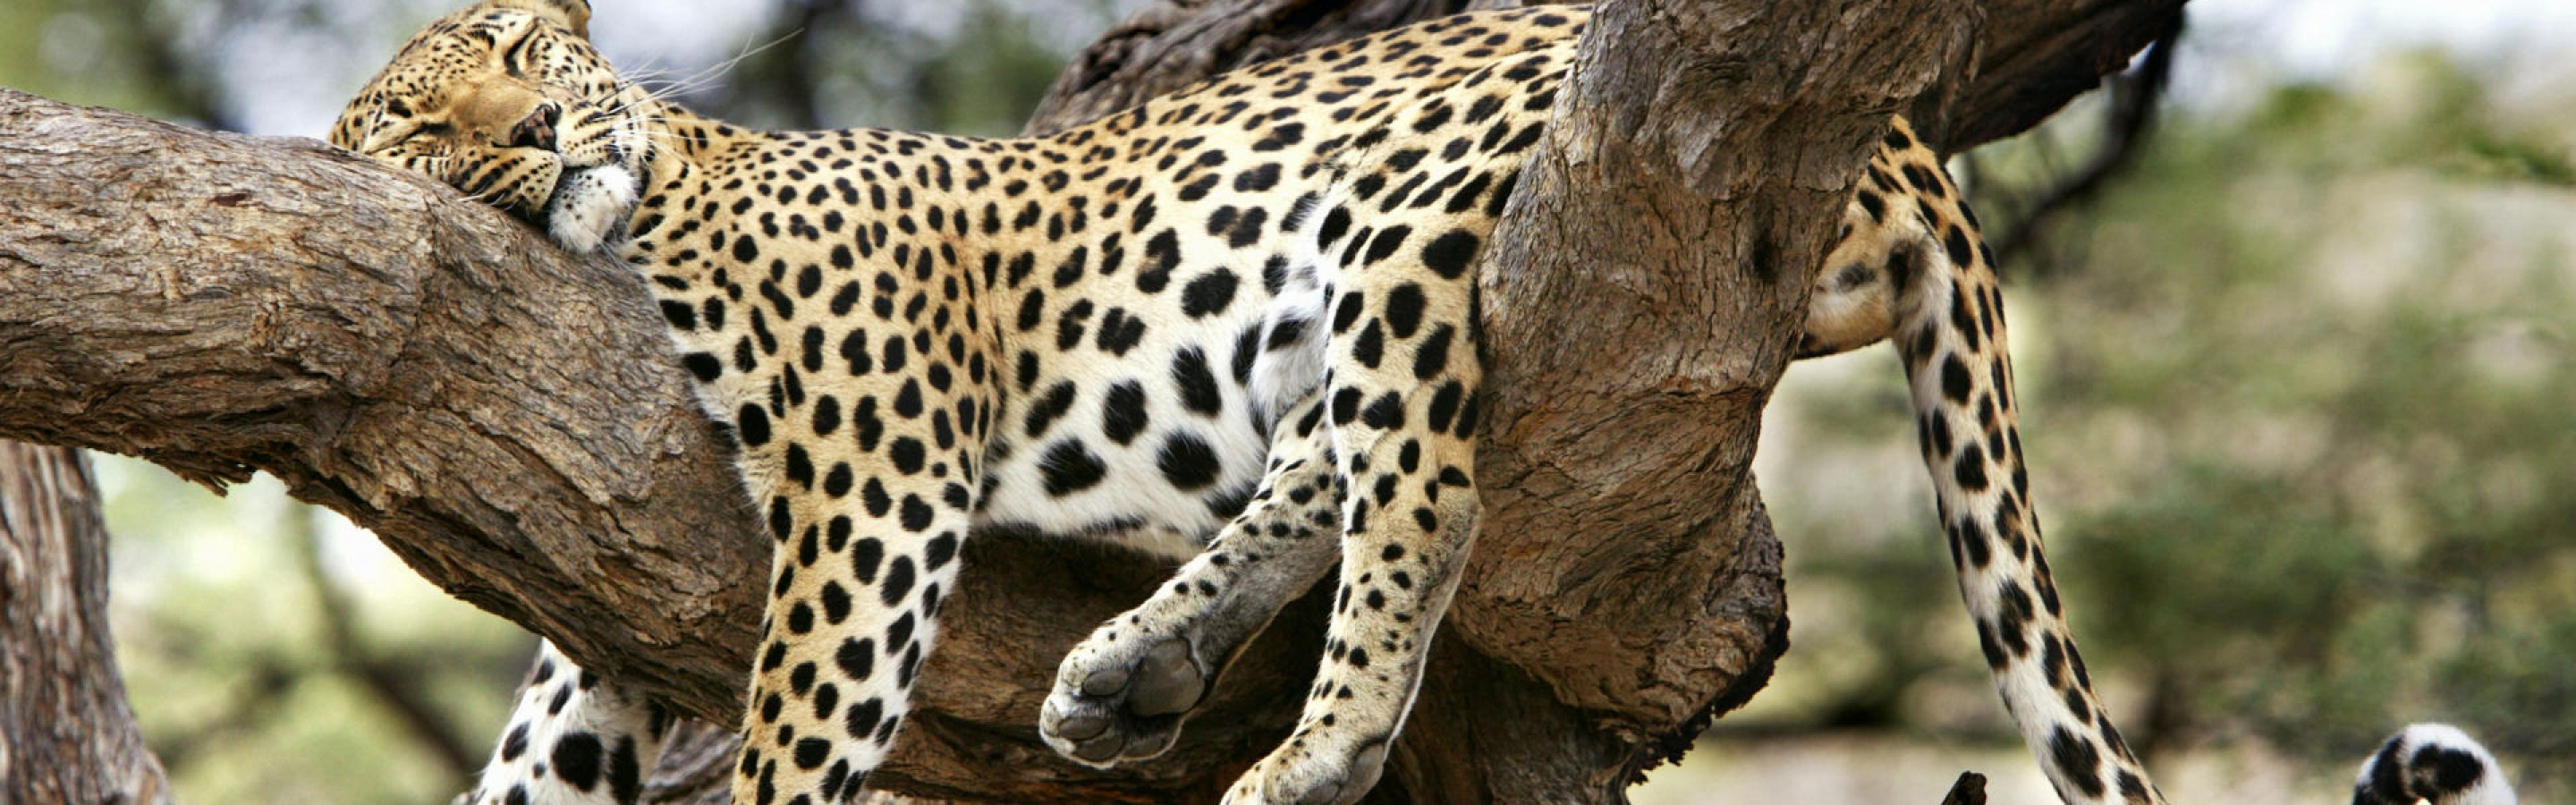 sleeping-leopard-animals-cats-cute-leopard-nature-sleeping-trees-900x2880